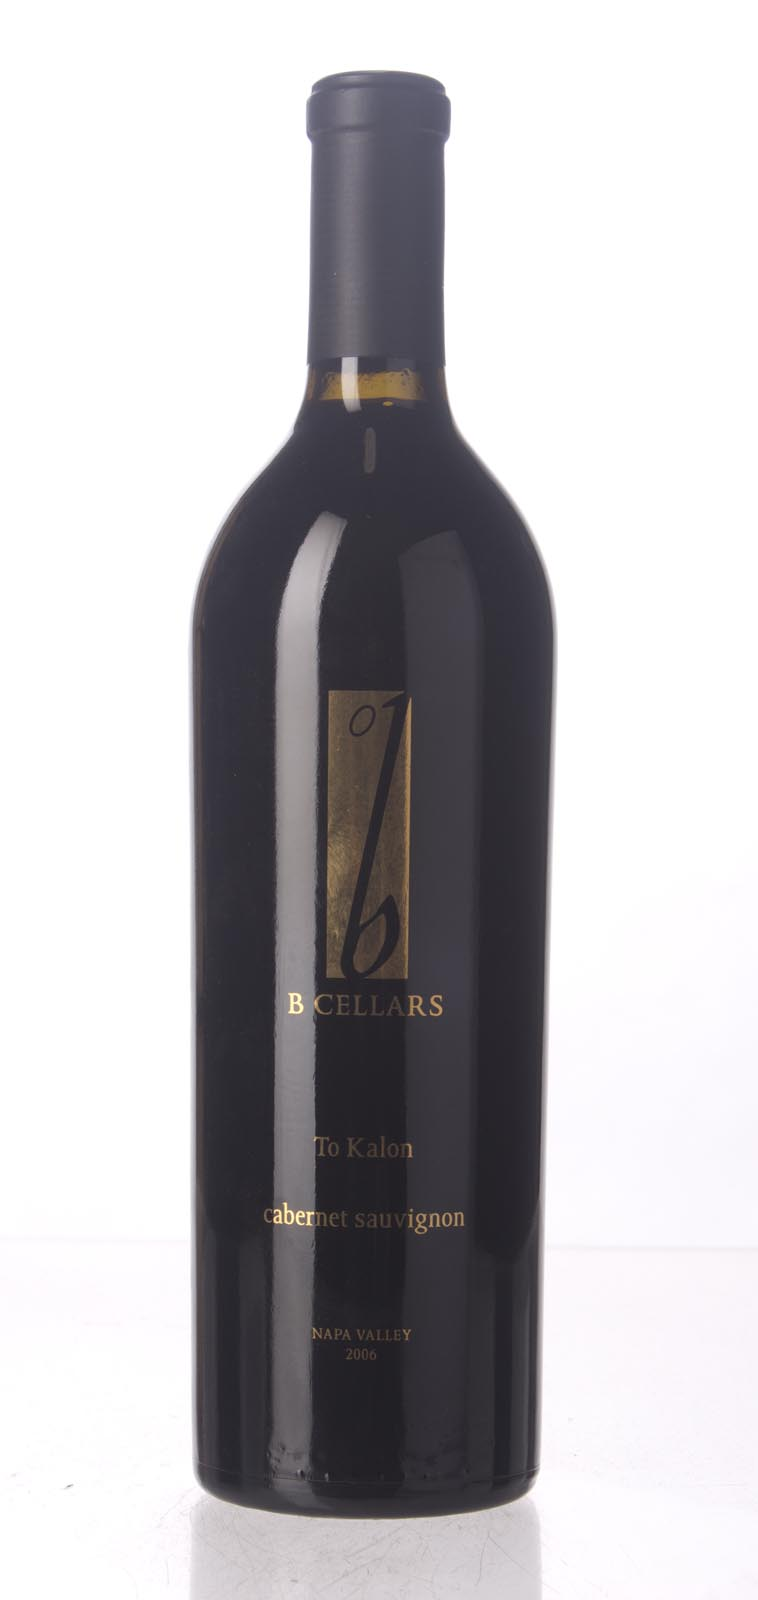 B Cellars Cabernet Sauvignon Beckstoffer To Kalon Vineyard 2006, 750mL (WA91) from The BPW - Merchants of rare and fine wines.